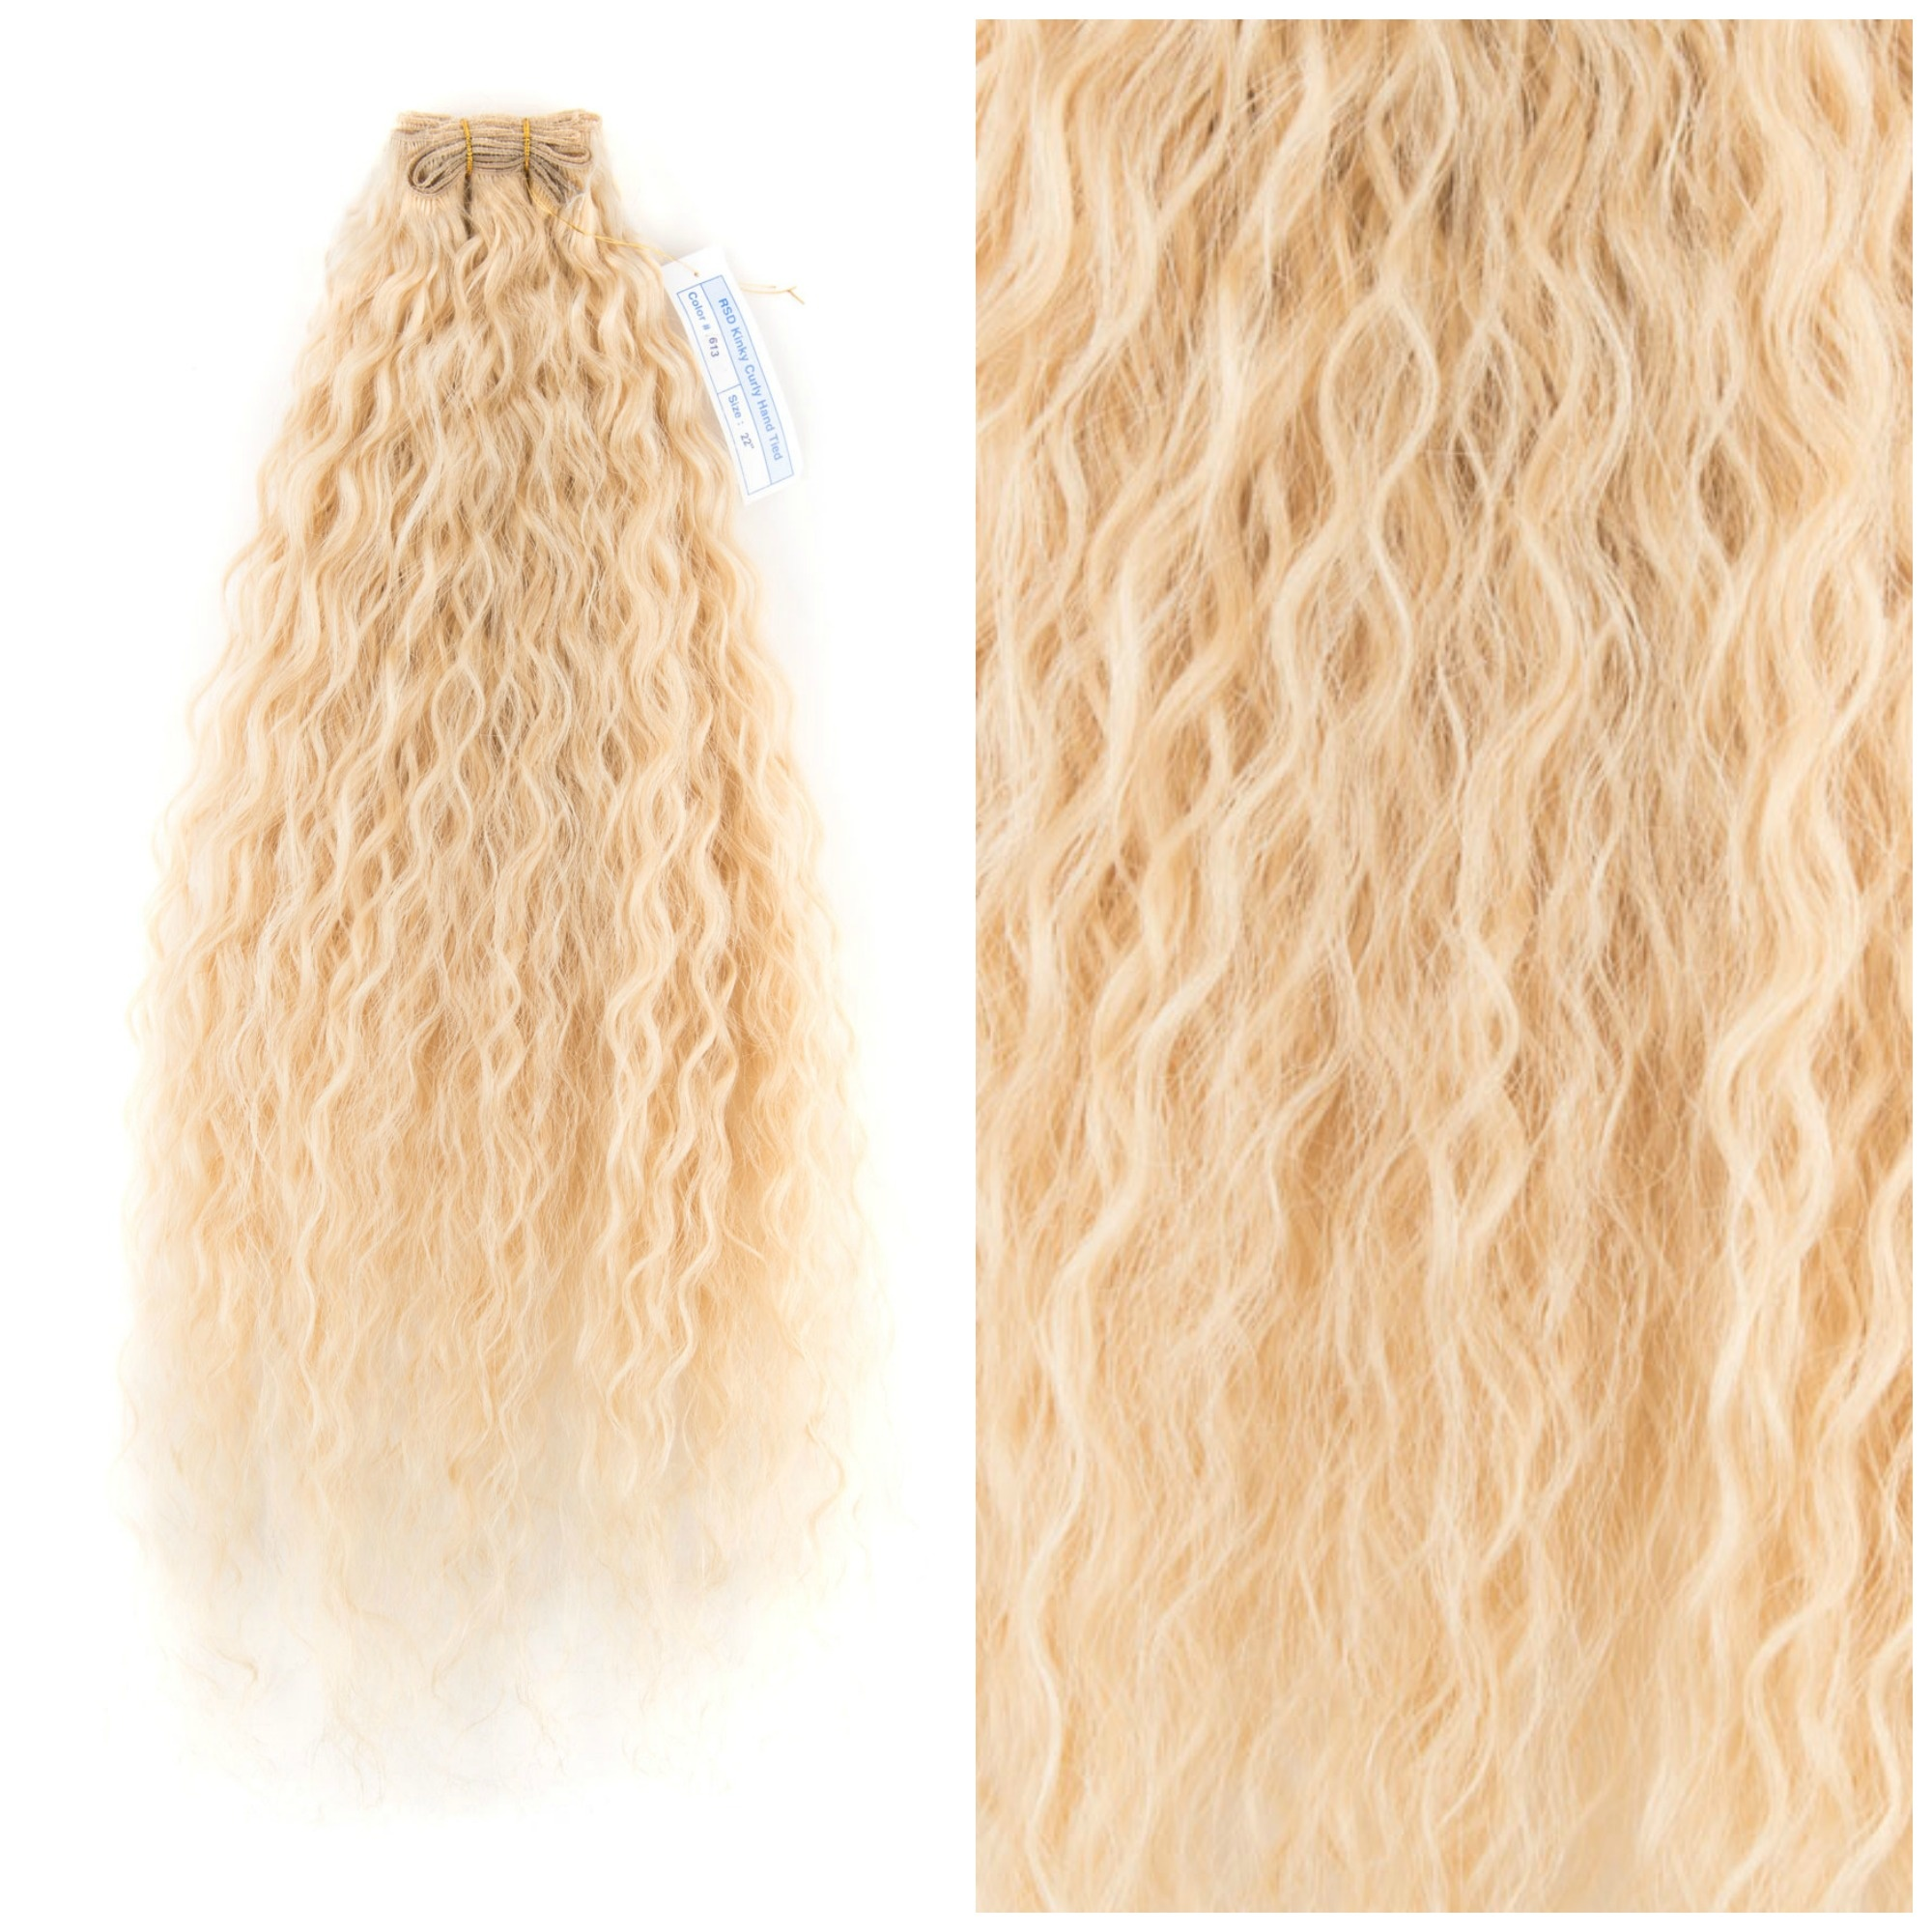 SilverFox Brazilian Kinky Curly Blond #22